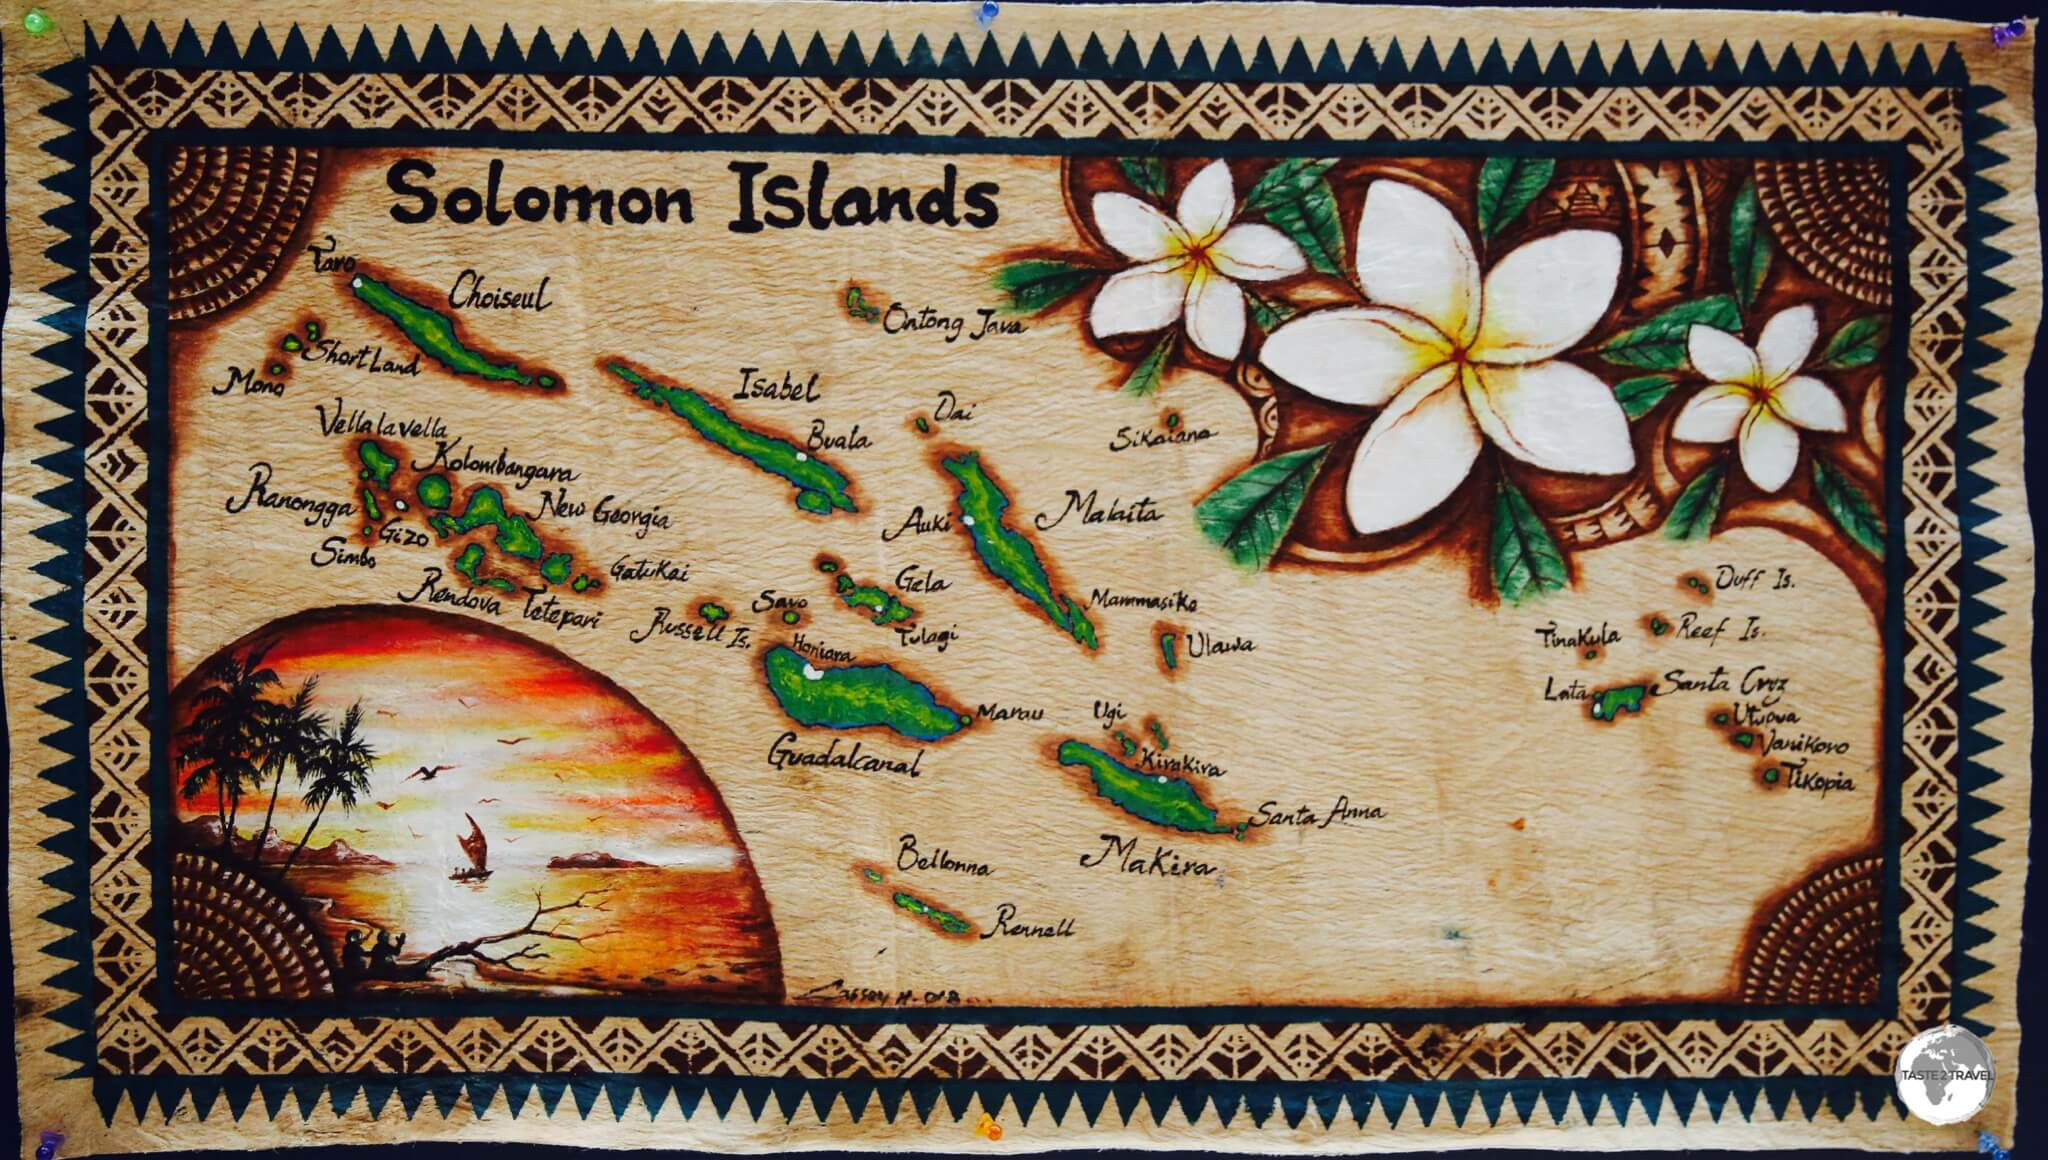 A map of the Solomon Islands painted on traditional Tapa cloth.